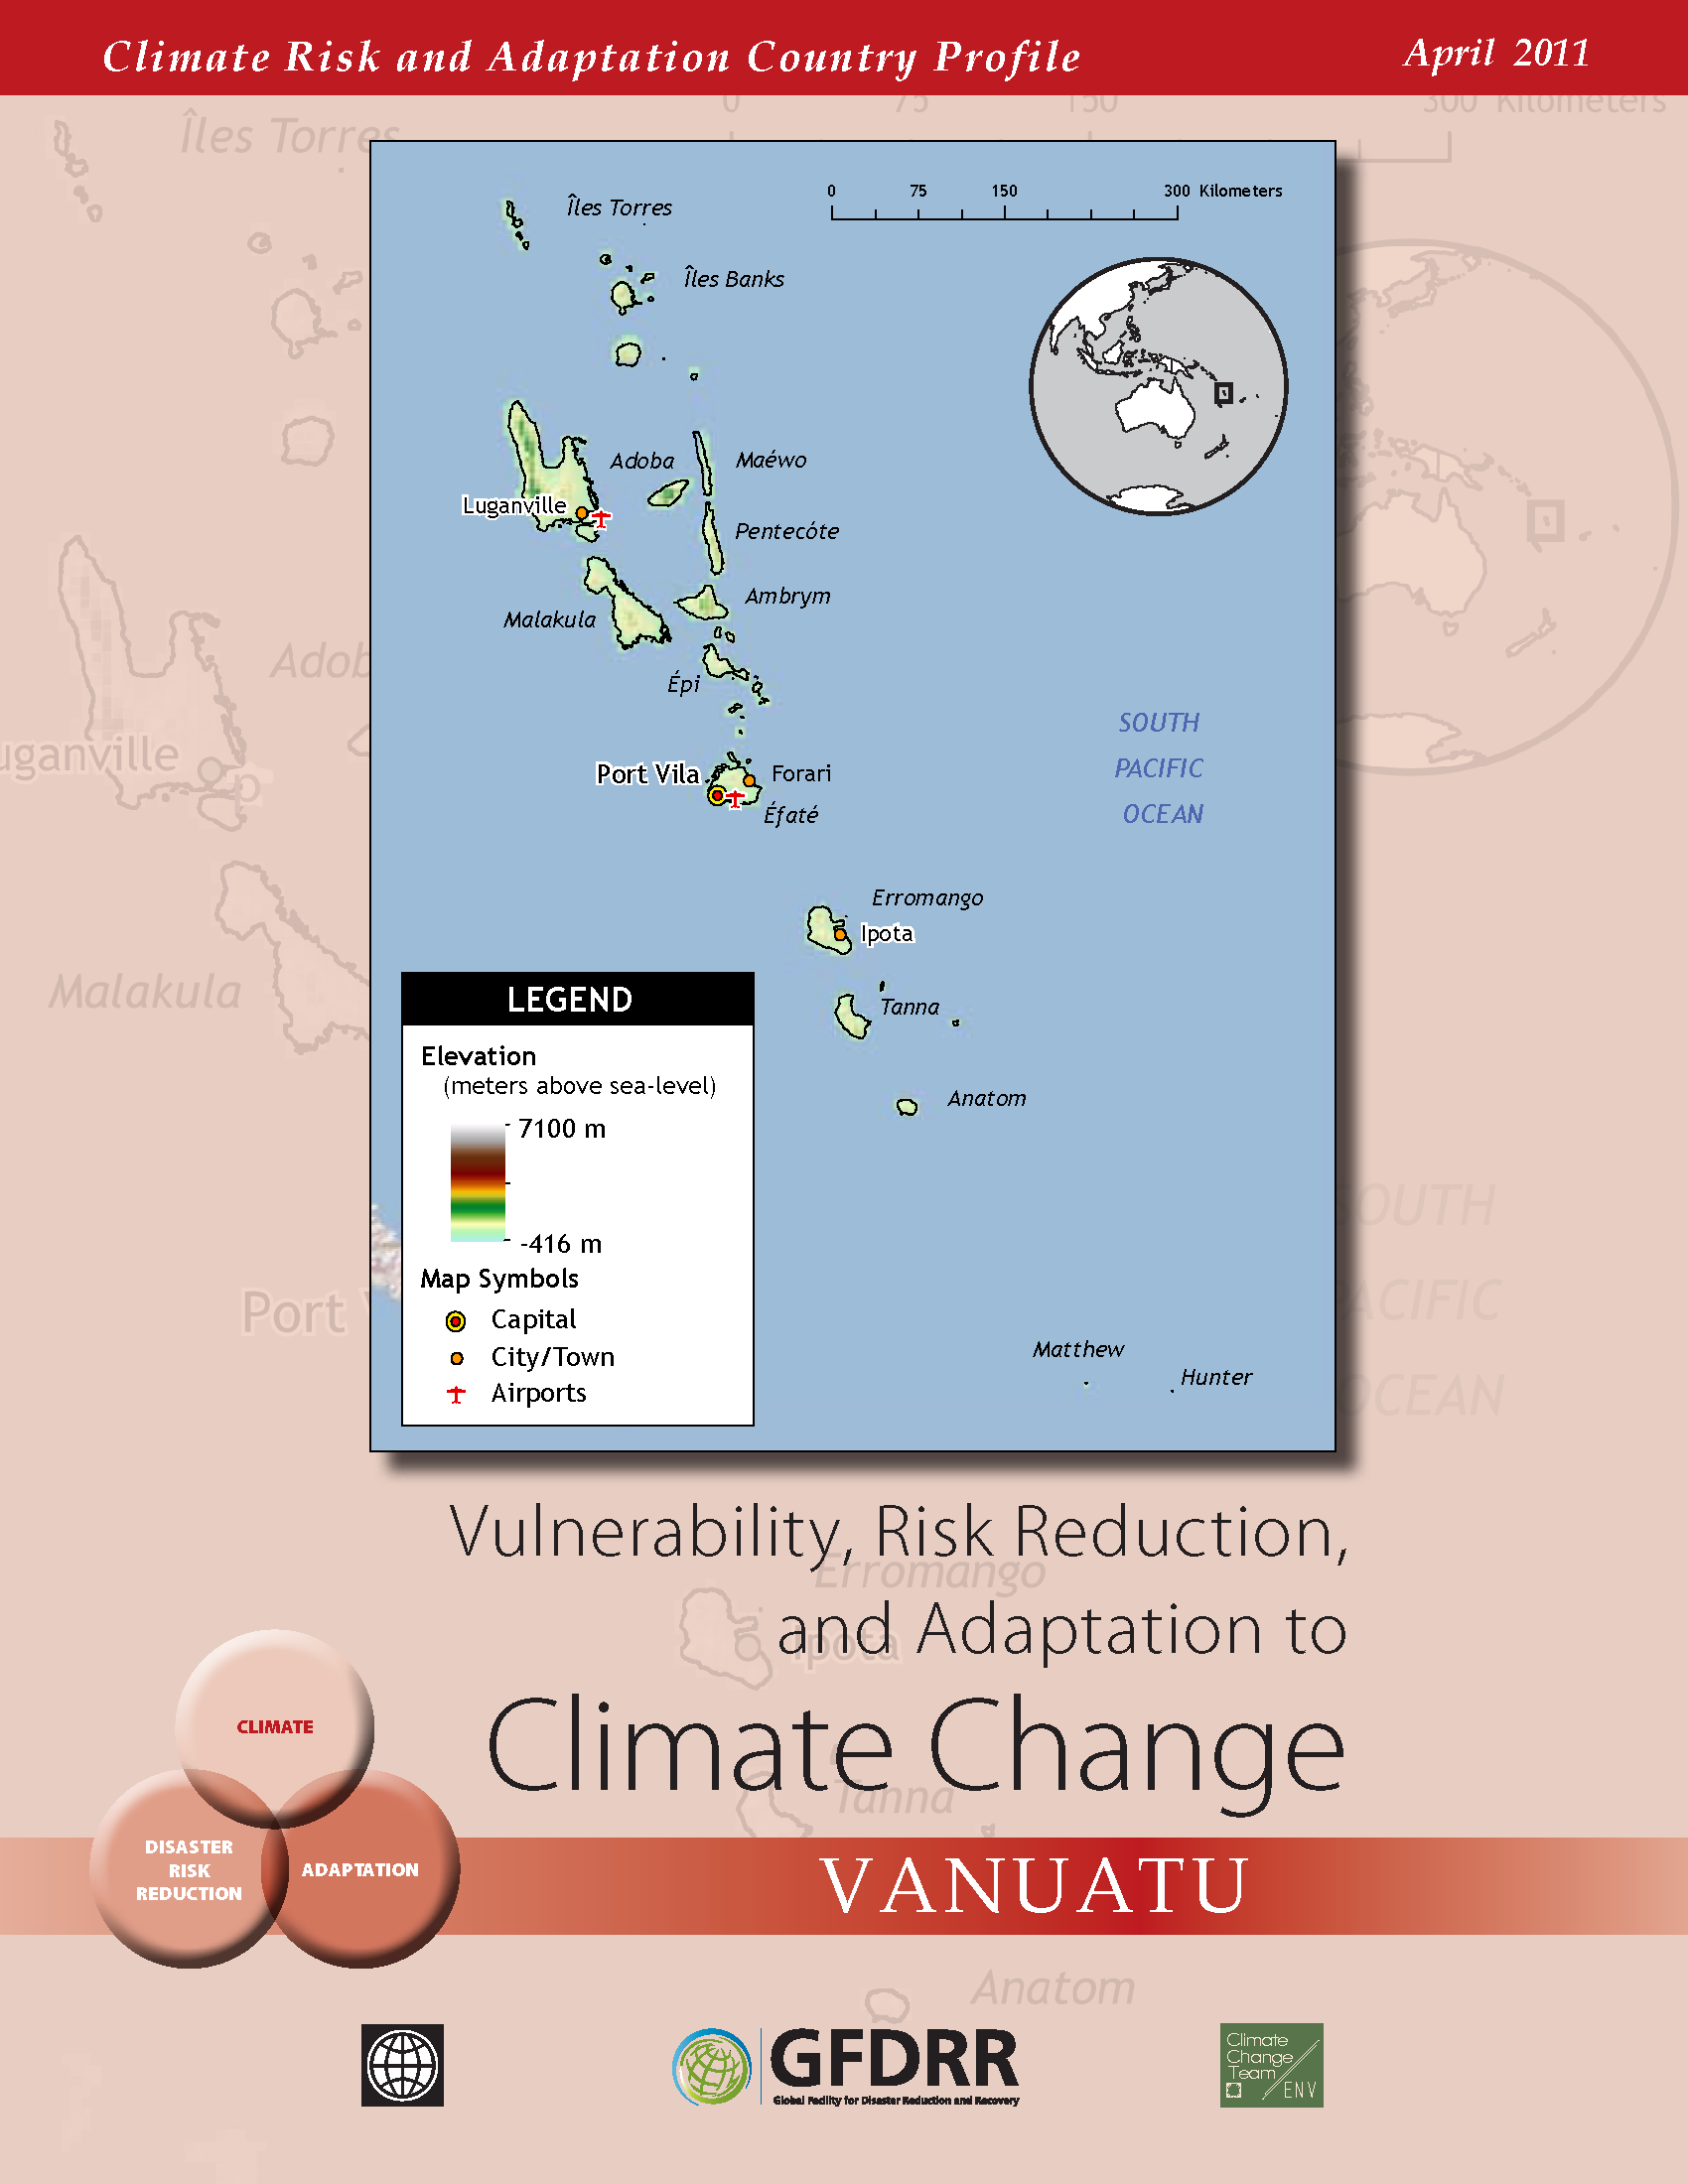 Climate Risk and Adaptation Country Profile: Vanuatu